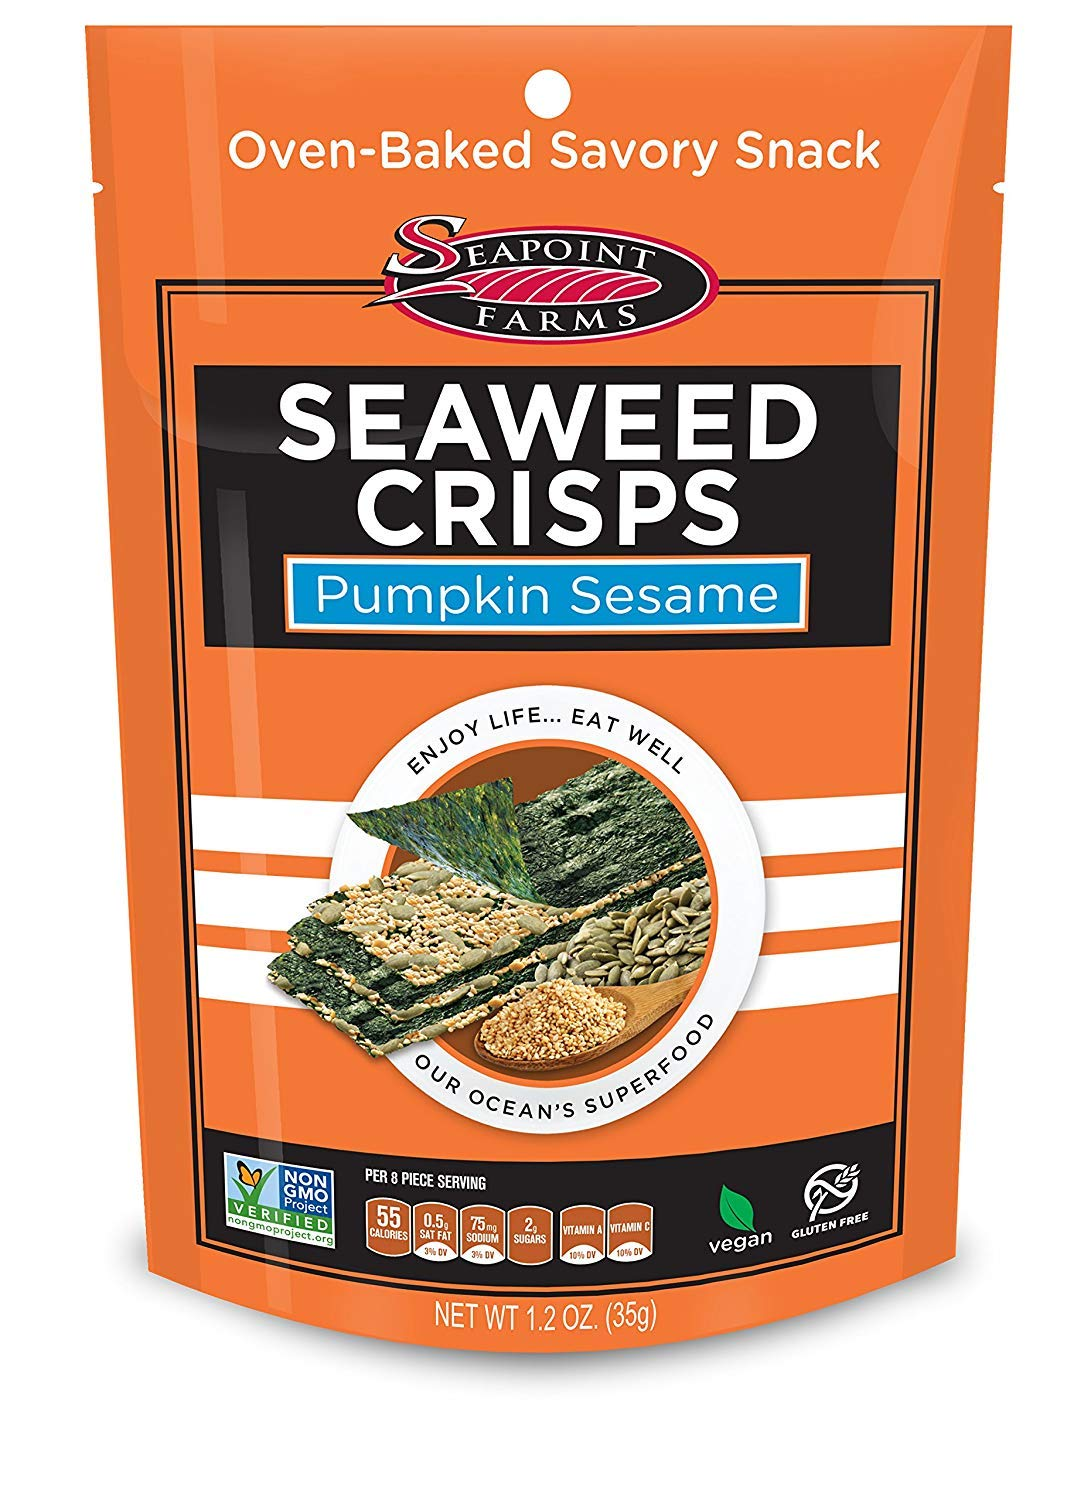 Pumpkin Sesame Sea Salt Seaweed Crisps - Seapoint Farms (1.2 oz Packs of 12) (2) by Seapoint Farms